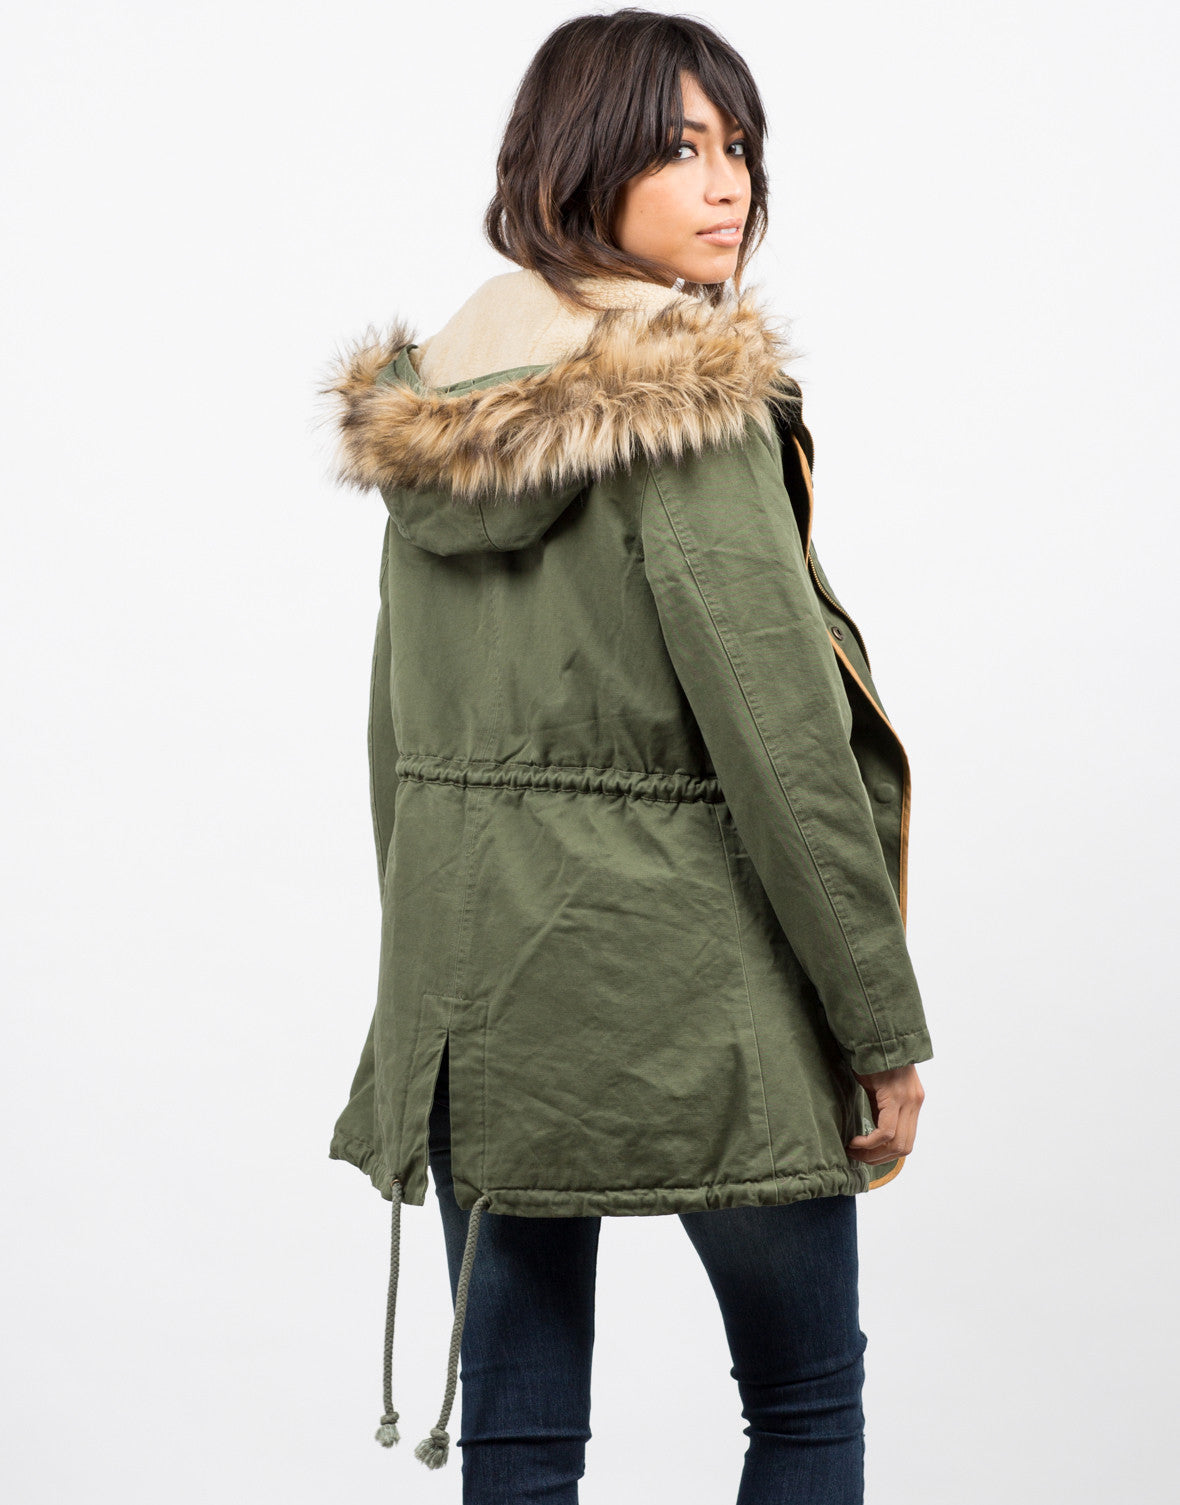 Back View of Hooded Parka